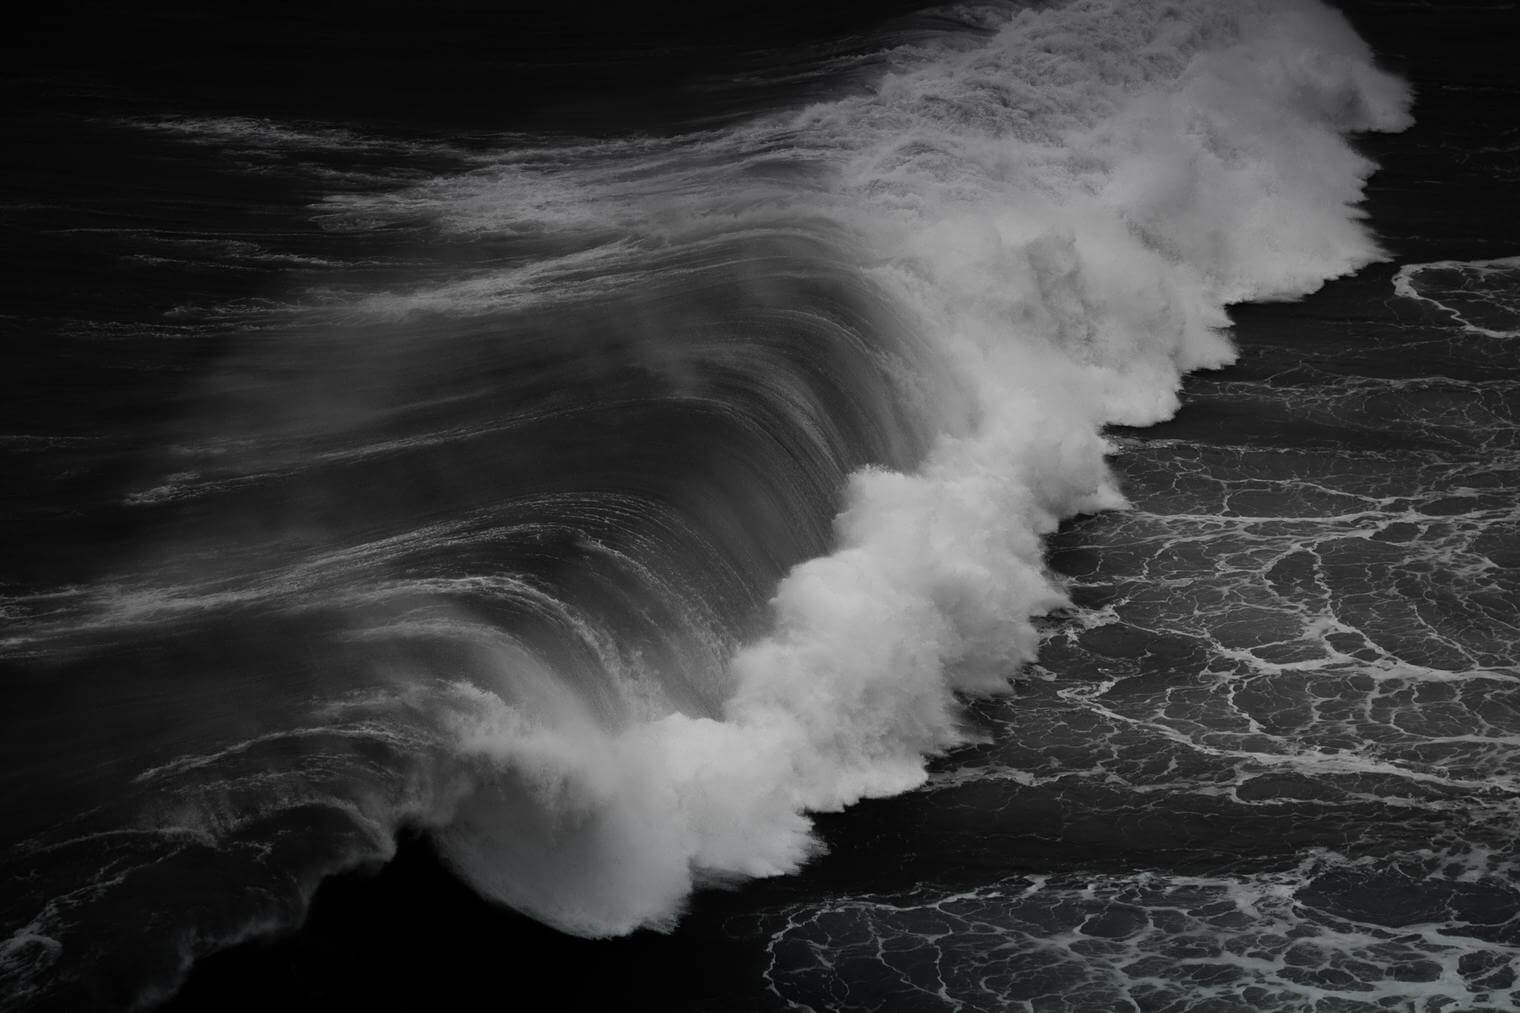 Ocean Waves in Black and White